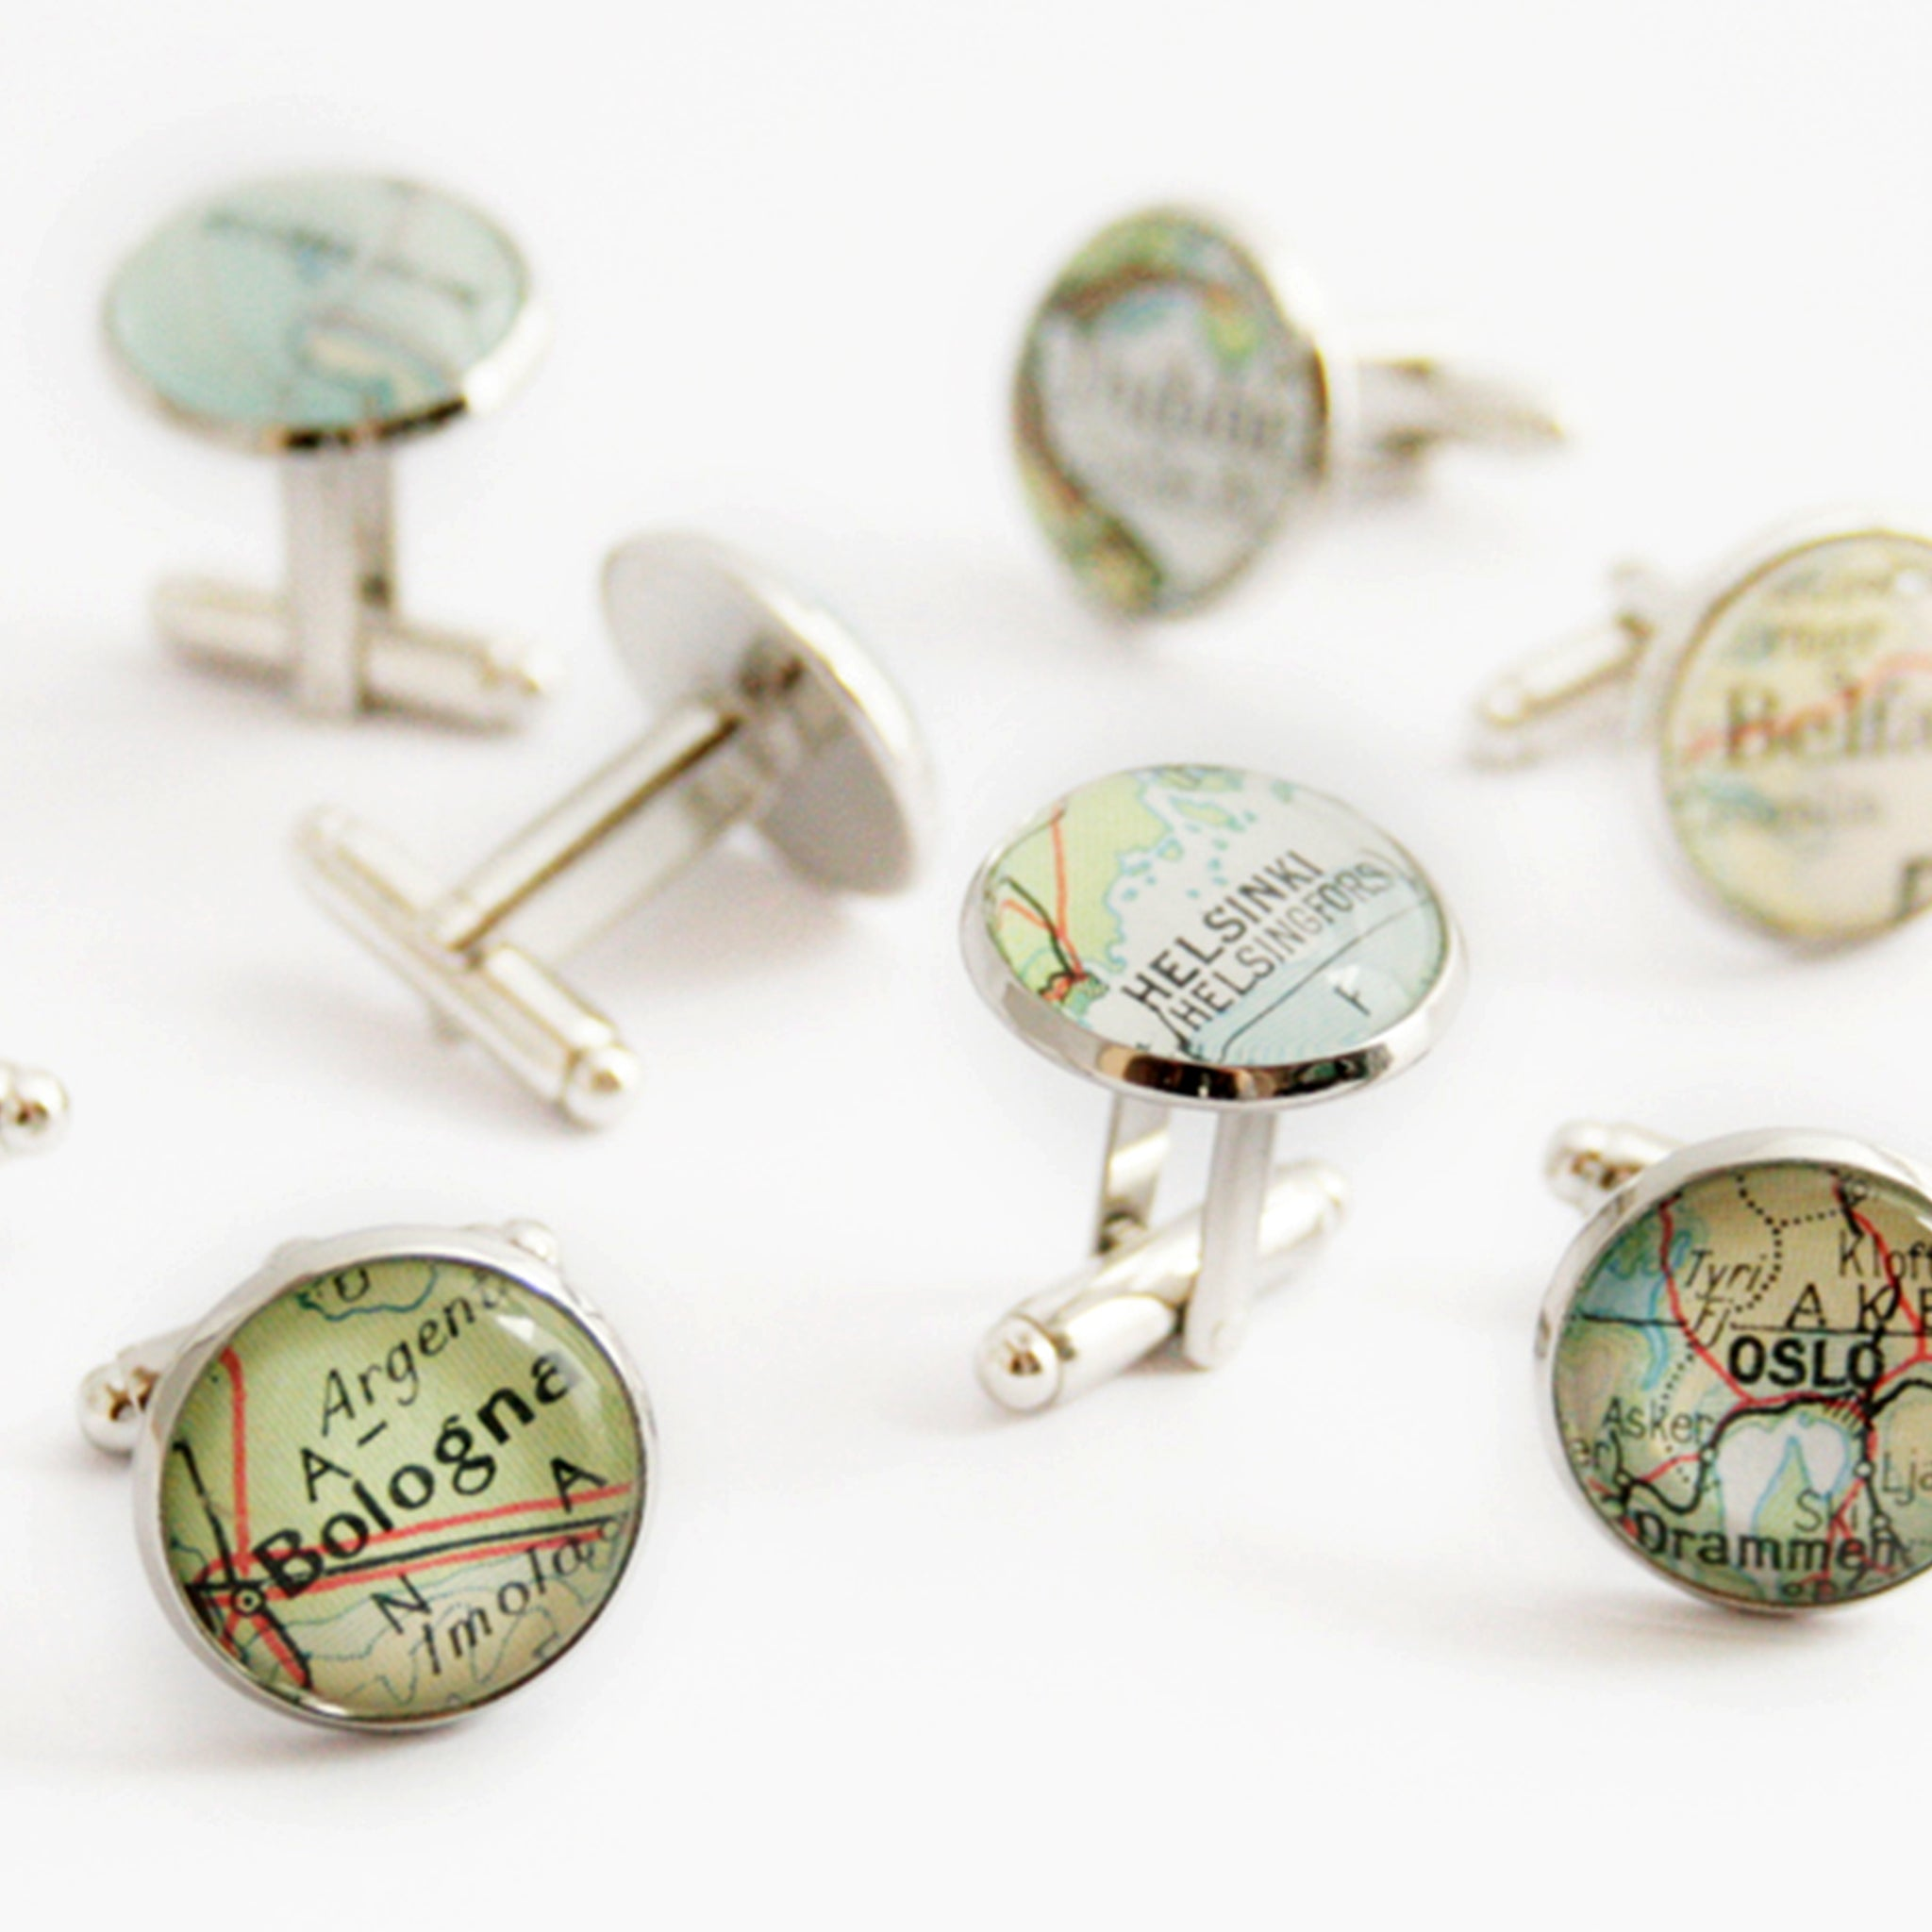 Many sets of Personalised map cufflinks in silver tone featuring custom maps